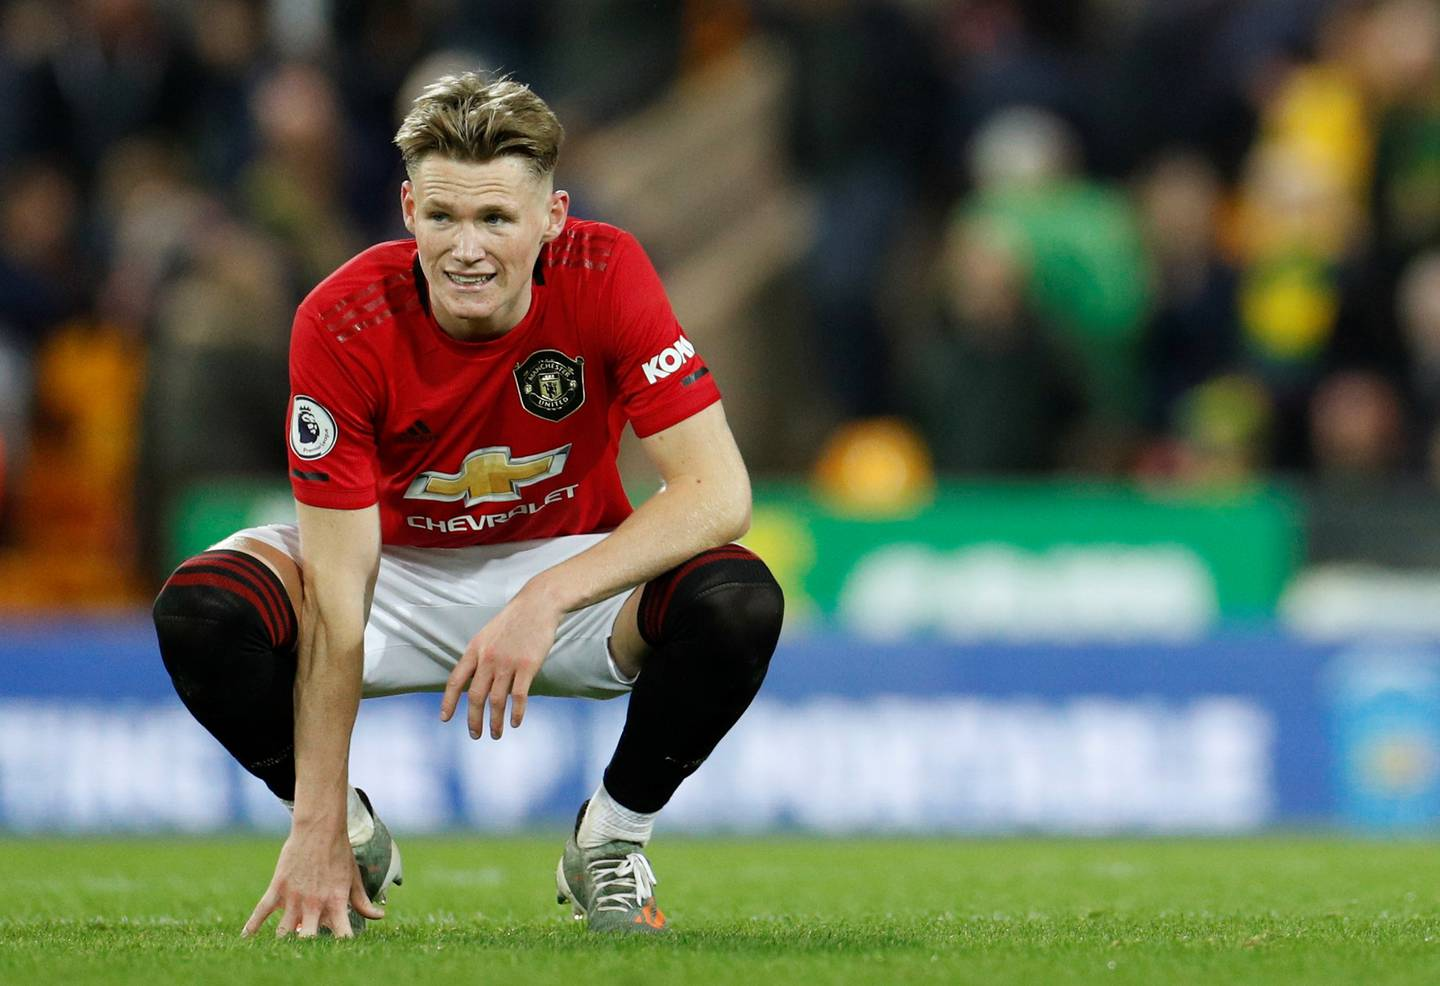 """Soccer Football - Premier League - Norwich City v Manchester United - Carrow Road, Norwich, Britain - October 27, 2019  Manchester United's Scott McTominay at the end of the match     Action Images via Reuters/John Sibley  EDITORIAL USE ONLY. No use with unauthorized audio, video, data, fixture lists, club/league logos or """"live"""" services. Online in-match use limited to 75 images, no video emulation. No use in betting, games or single club/league/player publications.  Please contact your account representative for further details."""